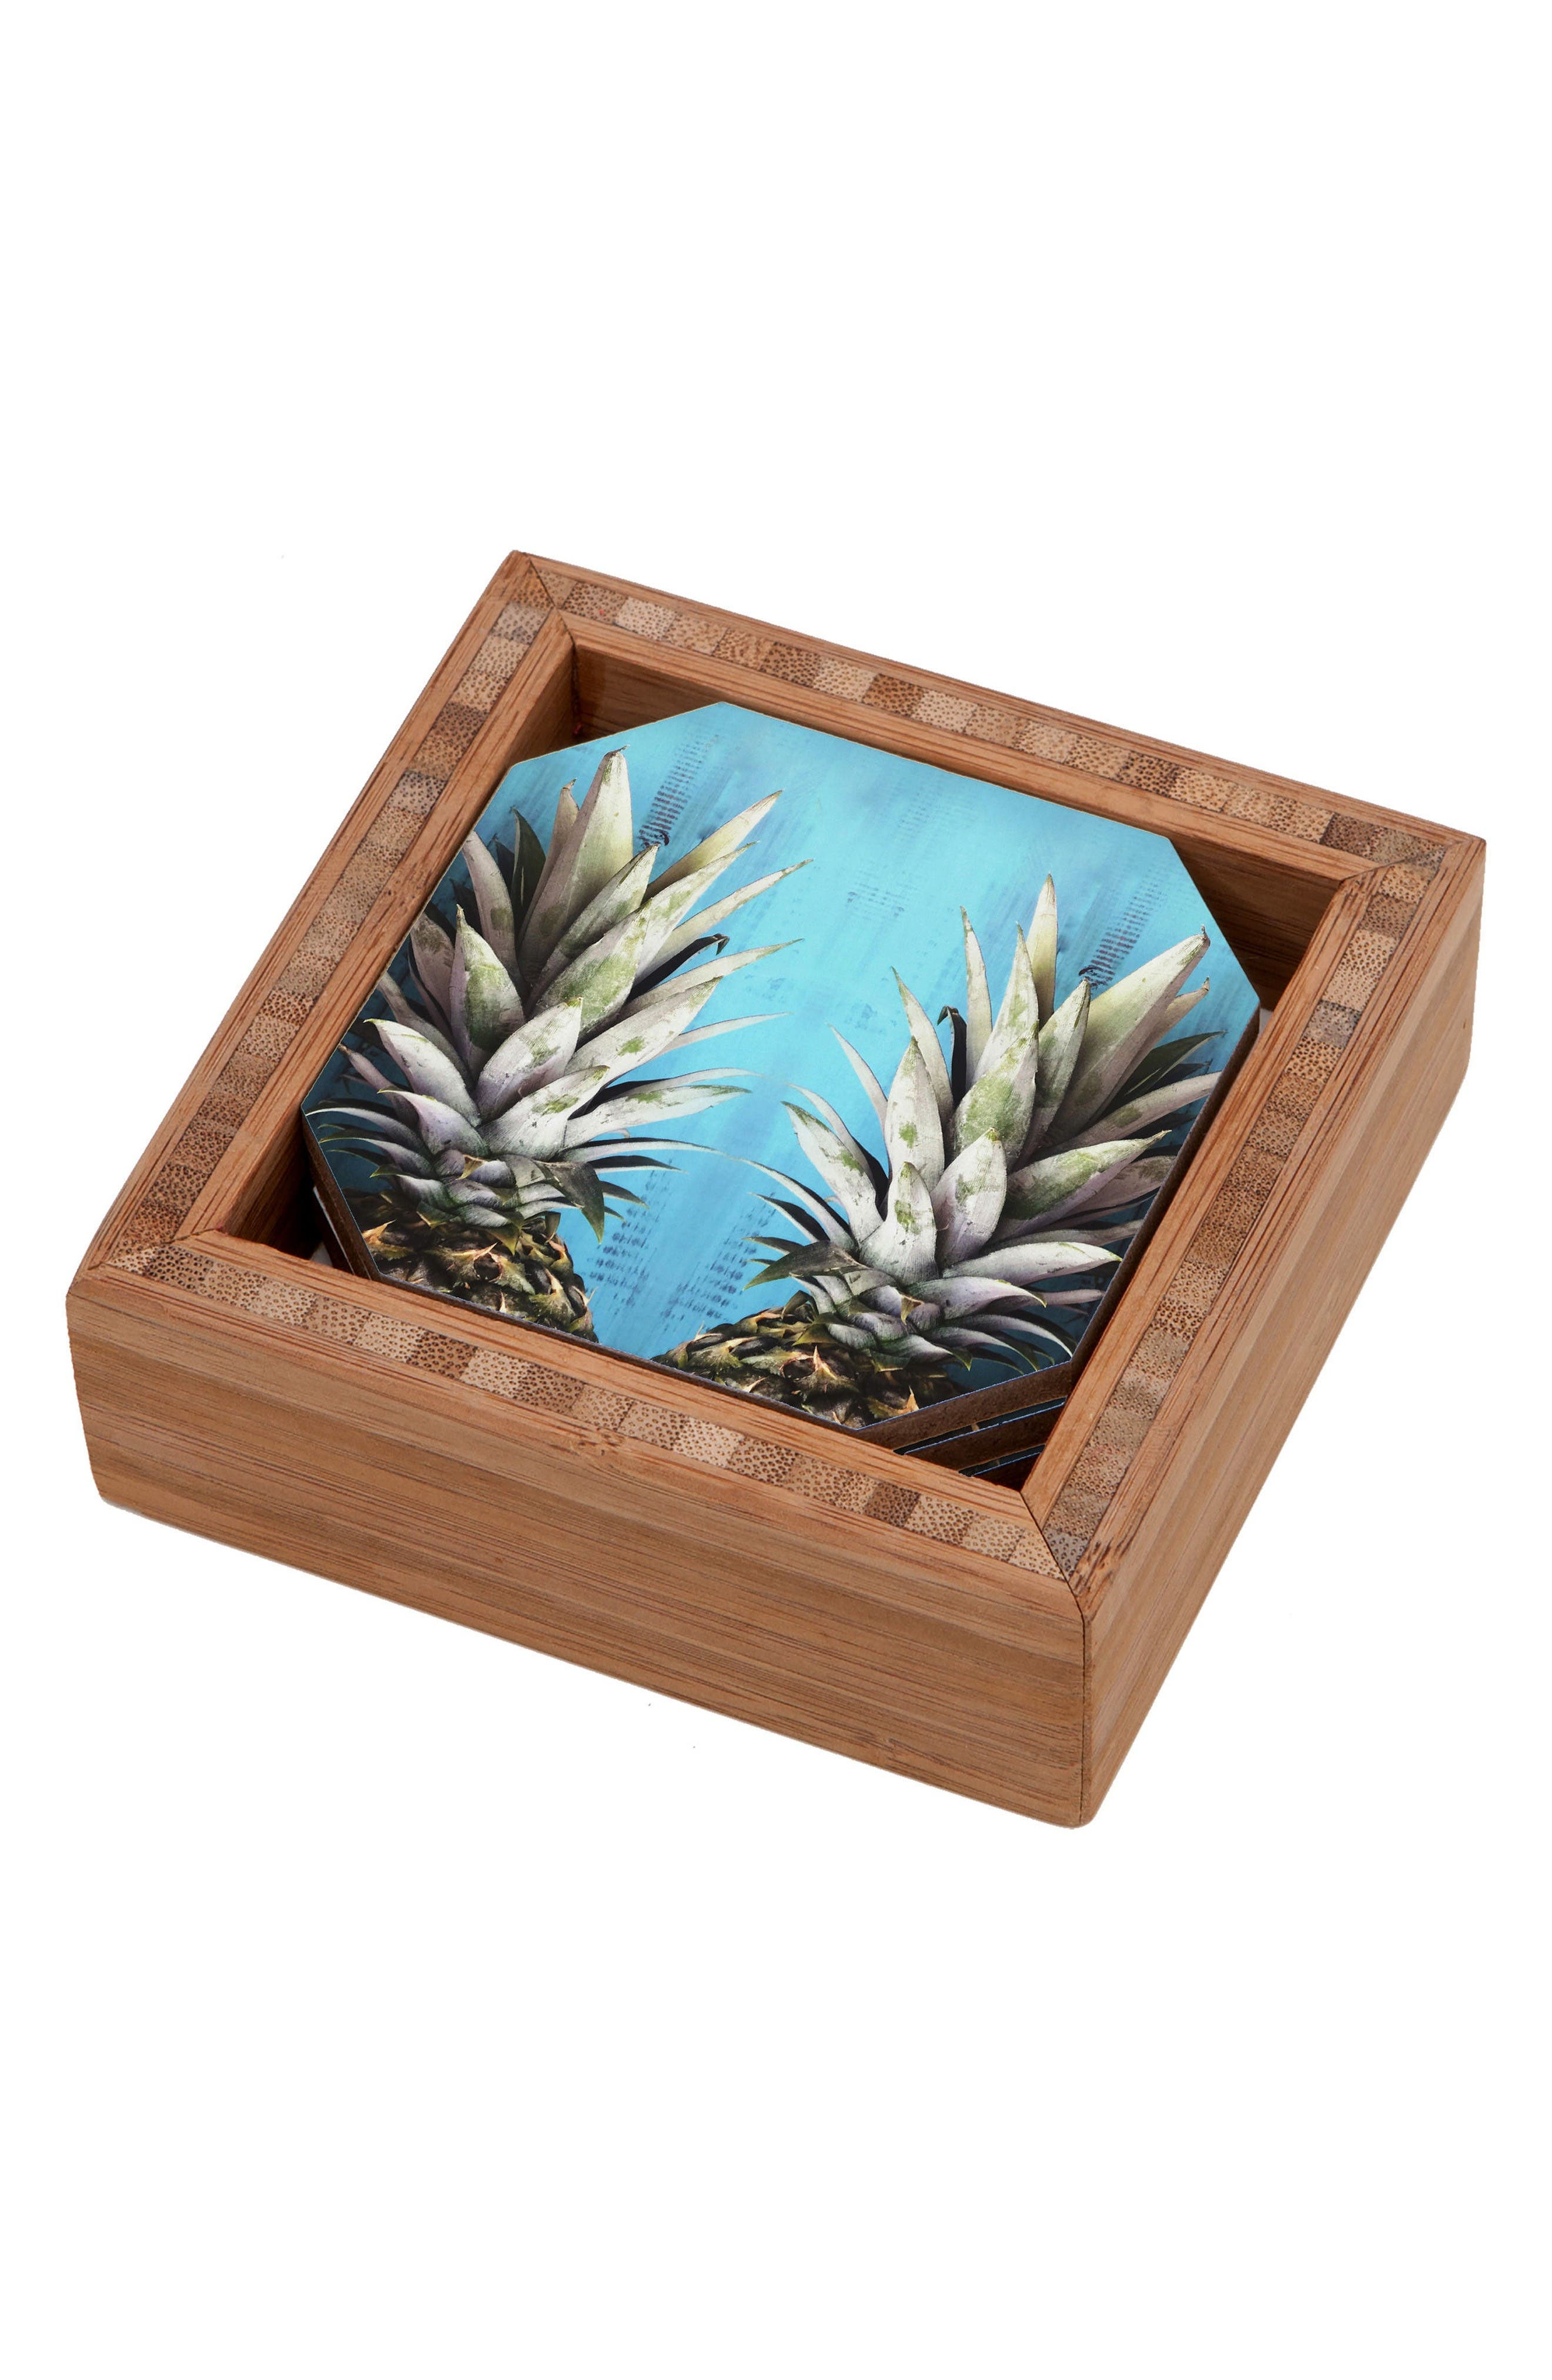 Alternate Image 1 Selected - Deny Designs How About Them Pineapples Coaster Set of 4 Coasters